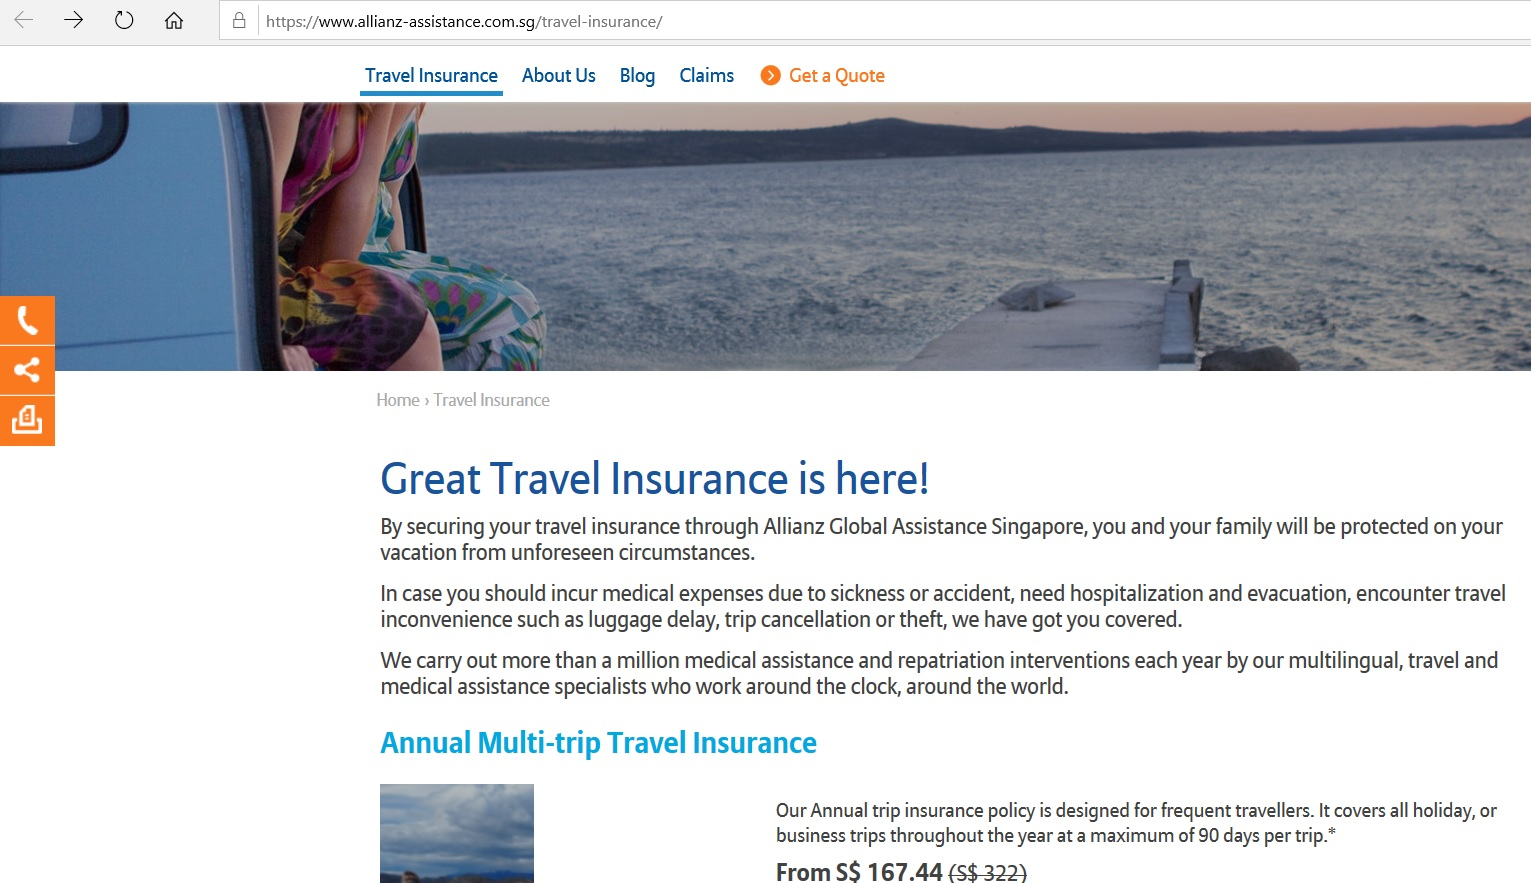 Allianz website homepage for travel insurance.